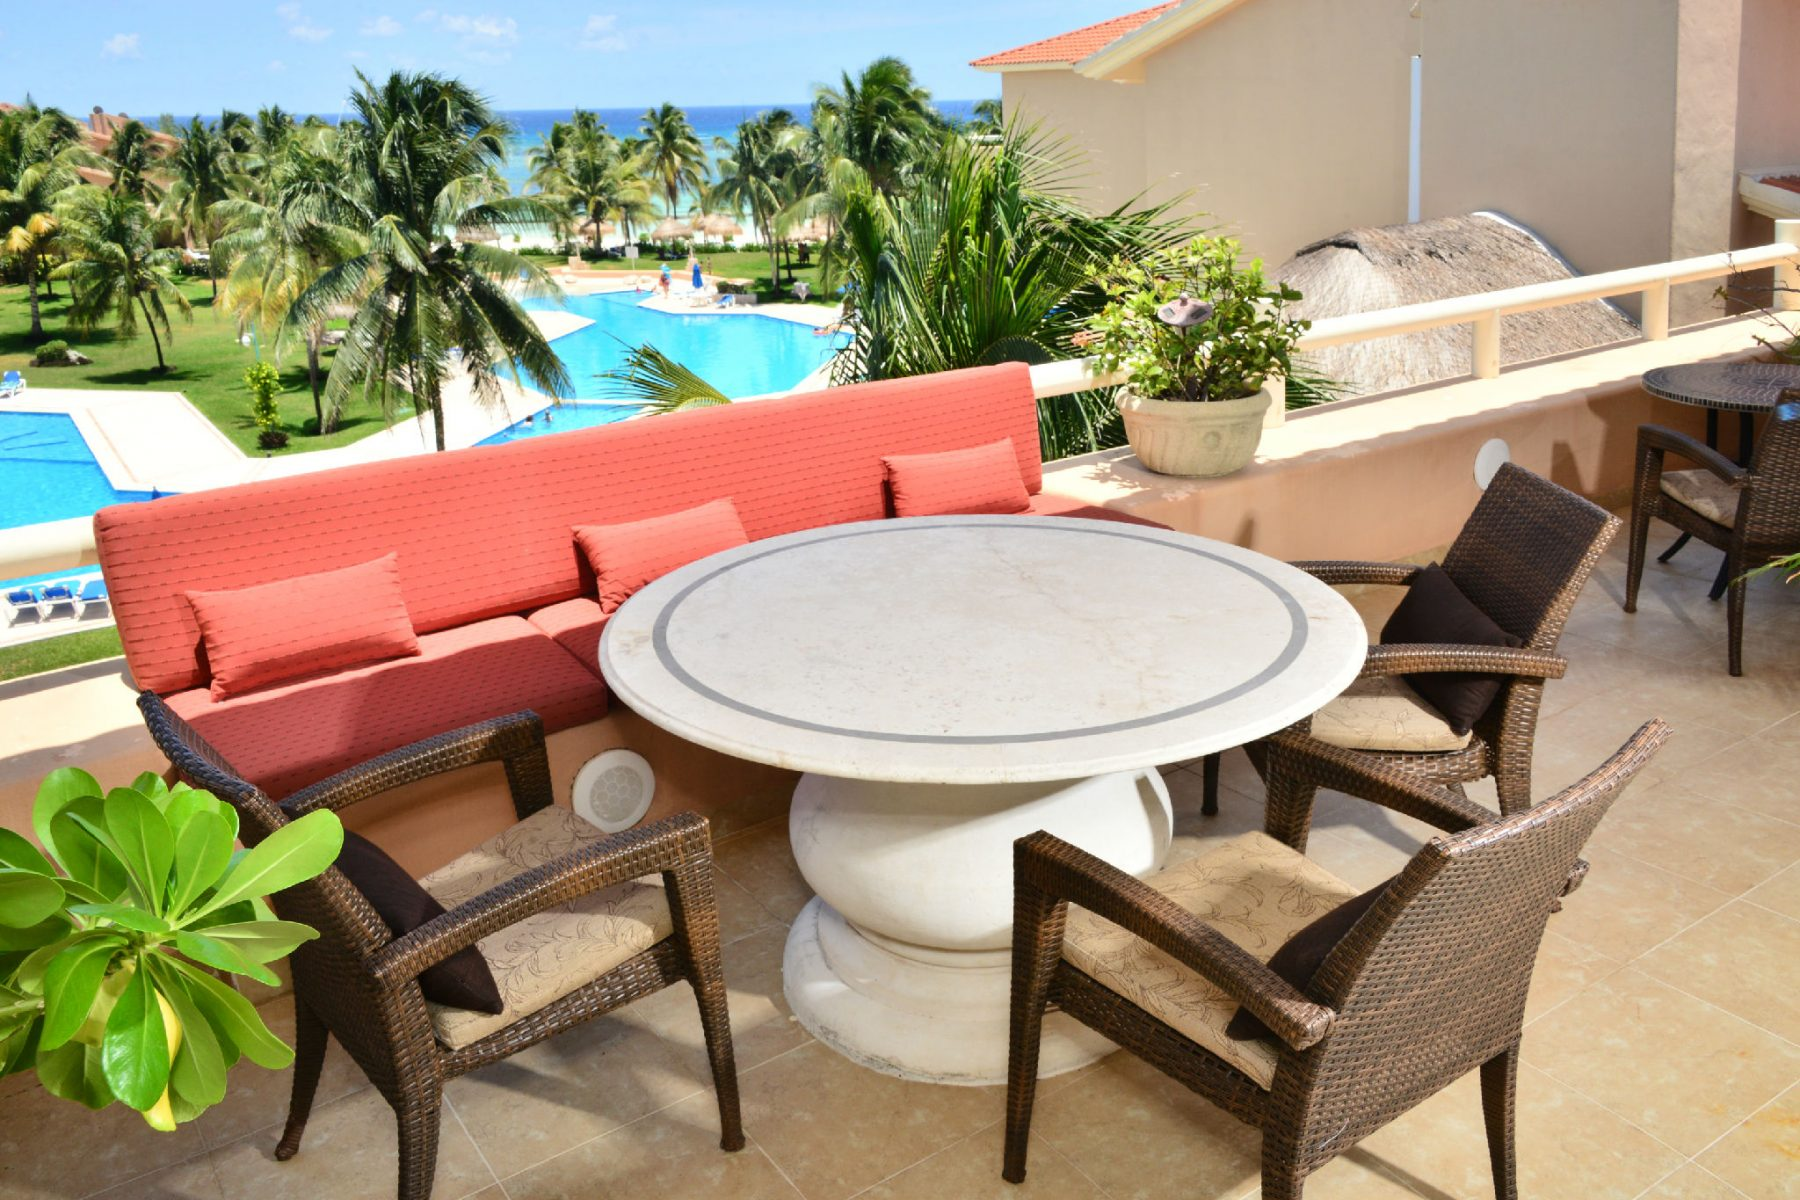 TERRACE OF penthouse in VILLAS DEL MAR E408 IN PUERTO AVENTURAS